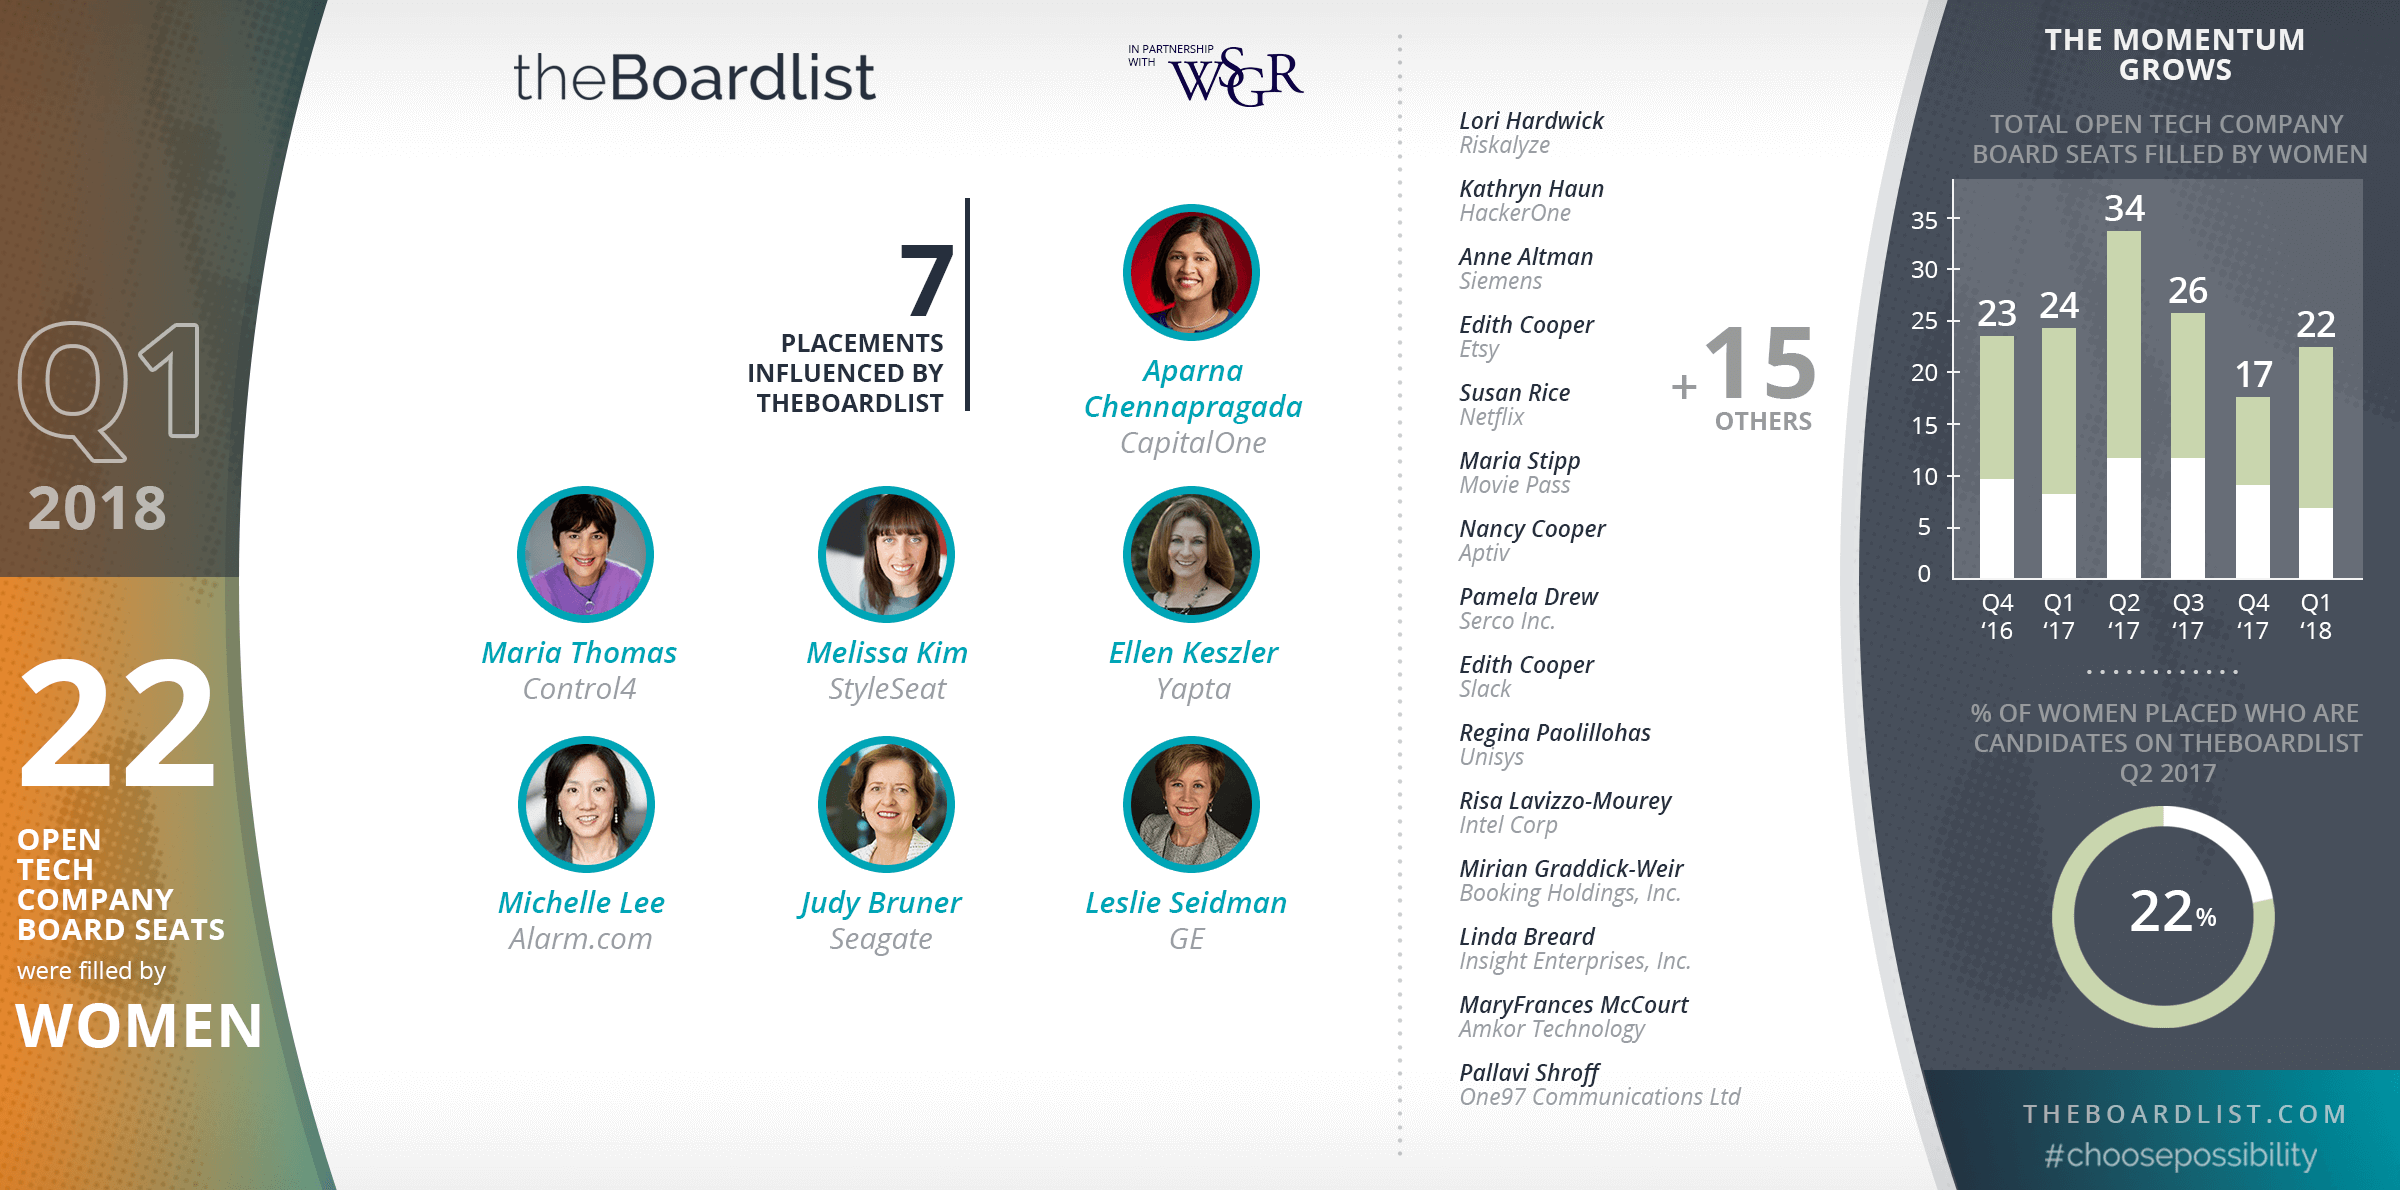 theBoardlist Index Q1 2018